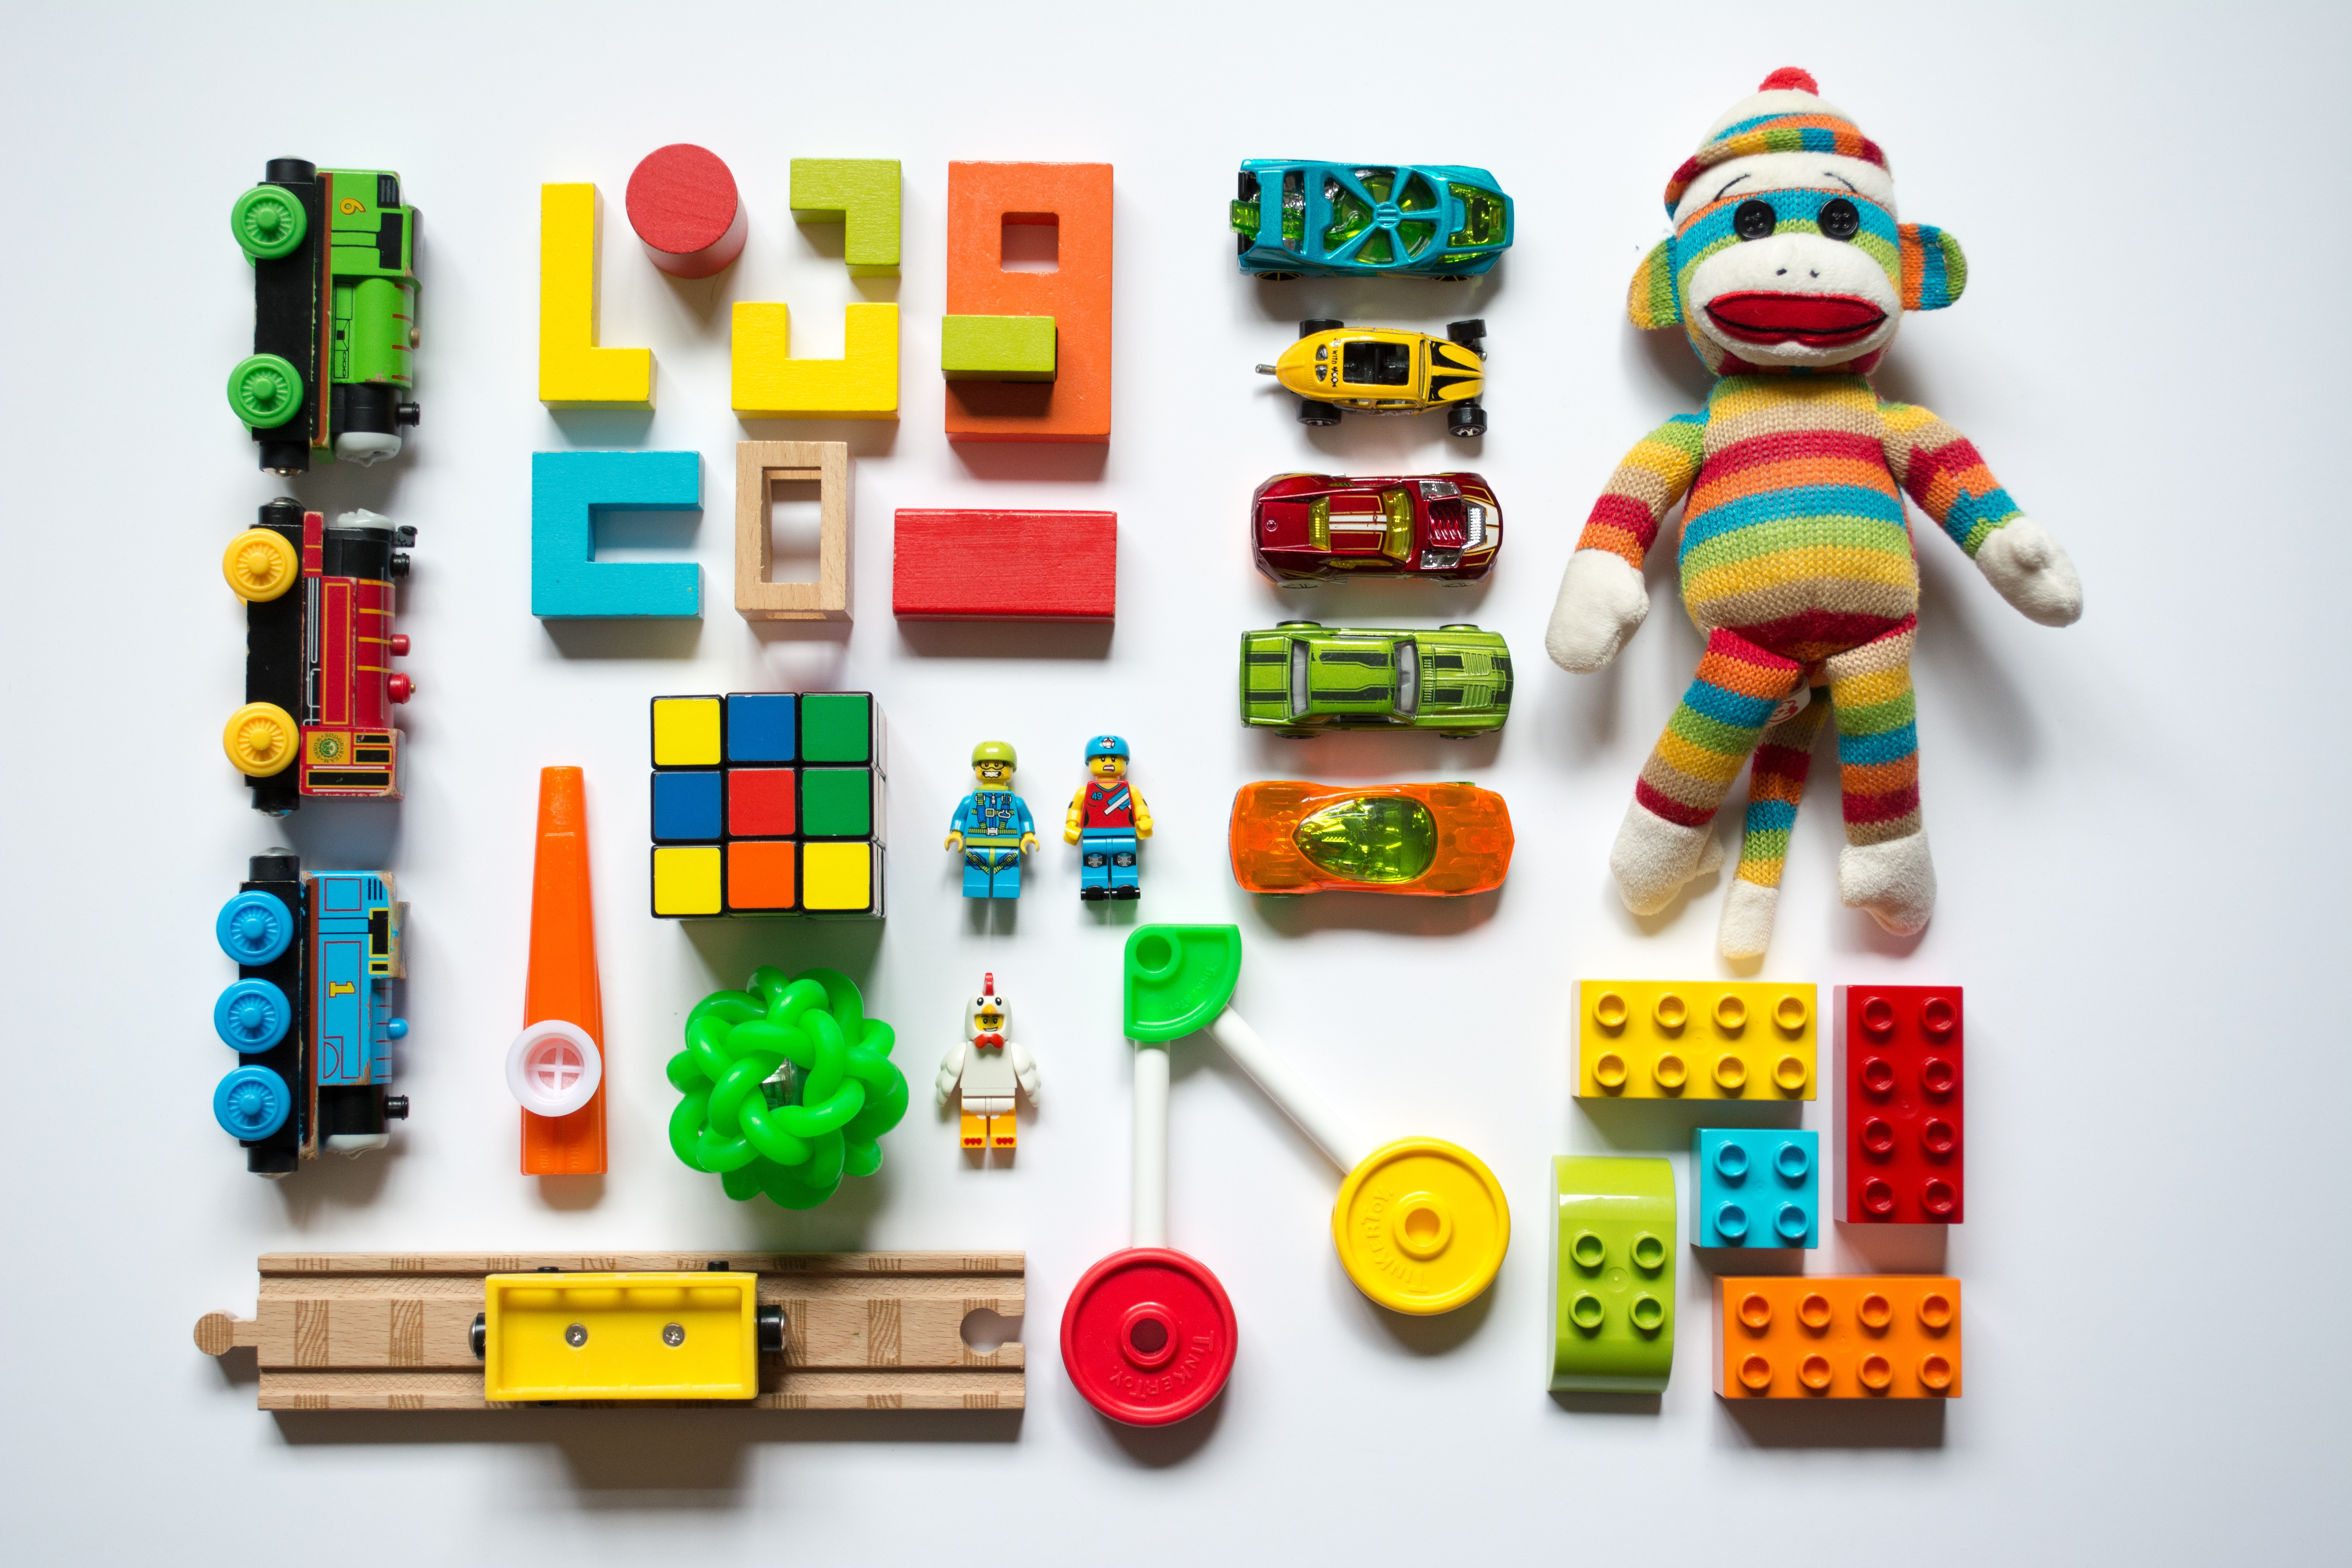 Toy trains, wooden blocks, toy cars, legos and a rainbow colored stuffed monkey lay on a white background in organized columns. Play therapy for children allows children to recognize emotions and is beneficial for children who have experienced trauma, low-self esteem or meltdowns. Play therapy for kids is available with a skilled child counselor near Atlanta in Roswell, GA 30076.